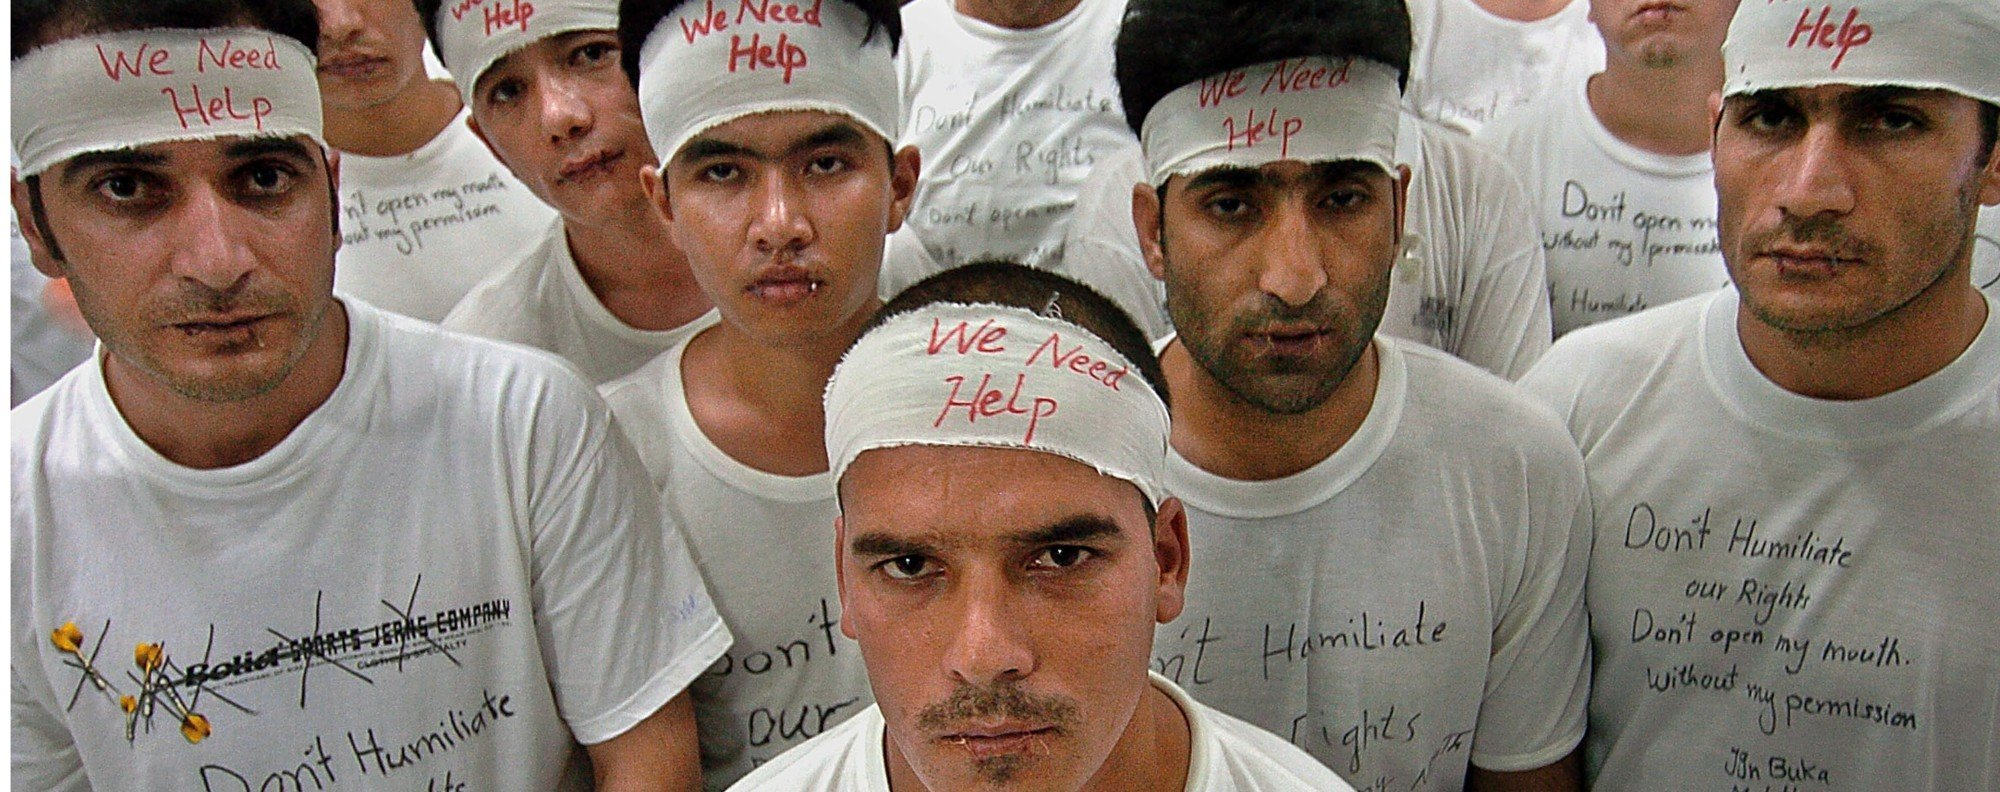 Afghan refugees in Indonesia on hunger strike. Photo: AFP